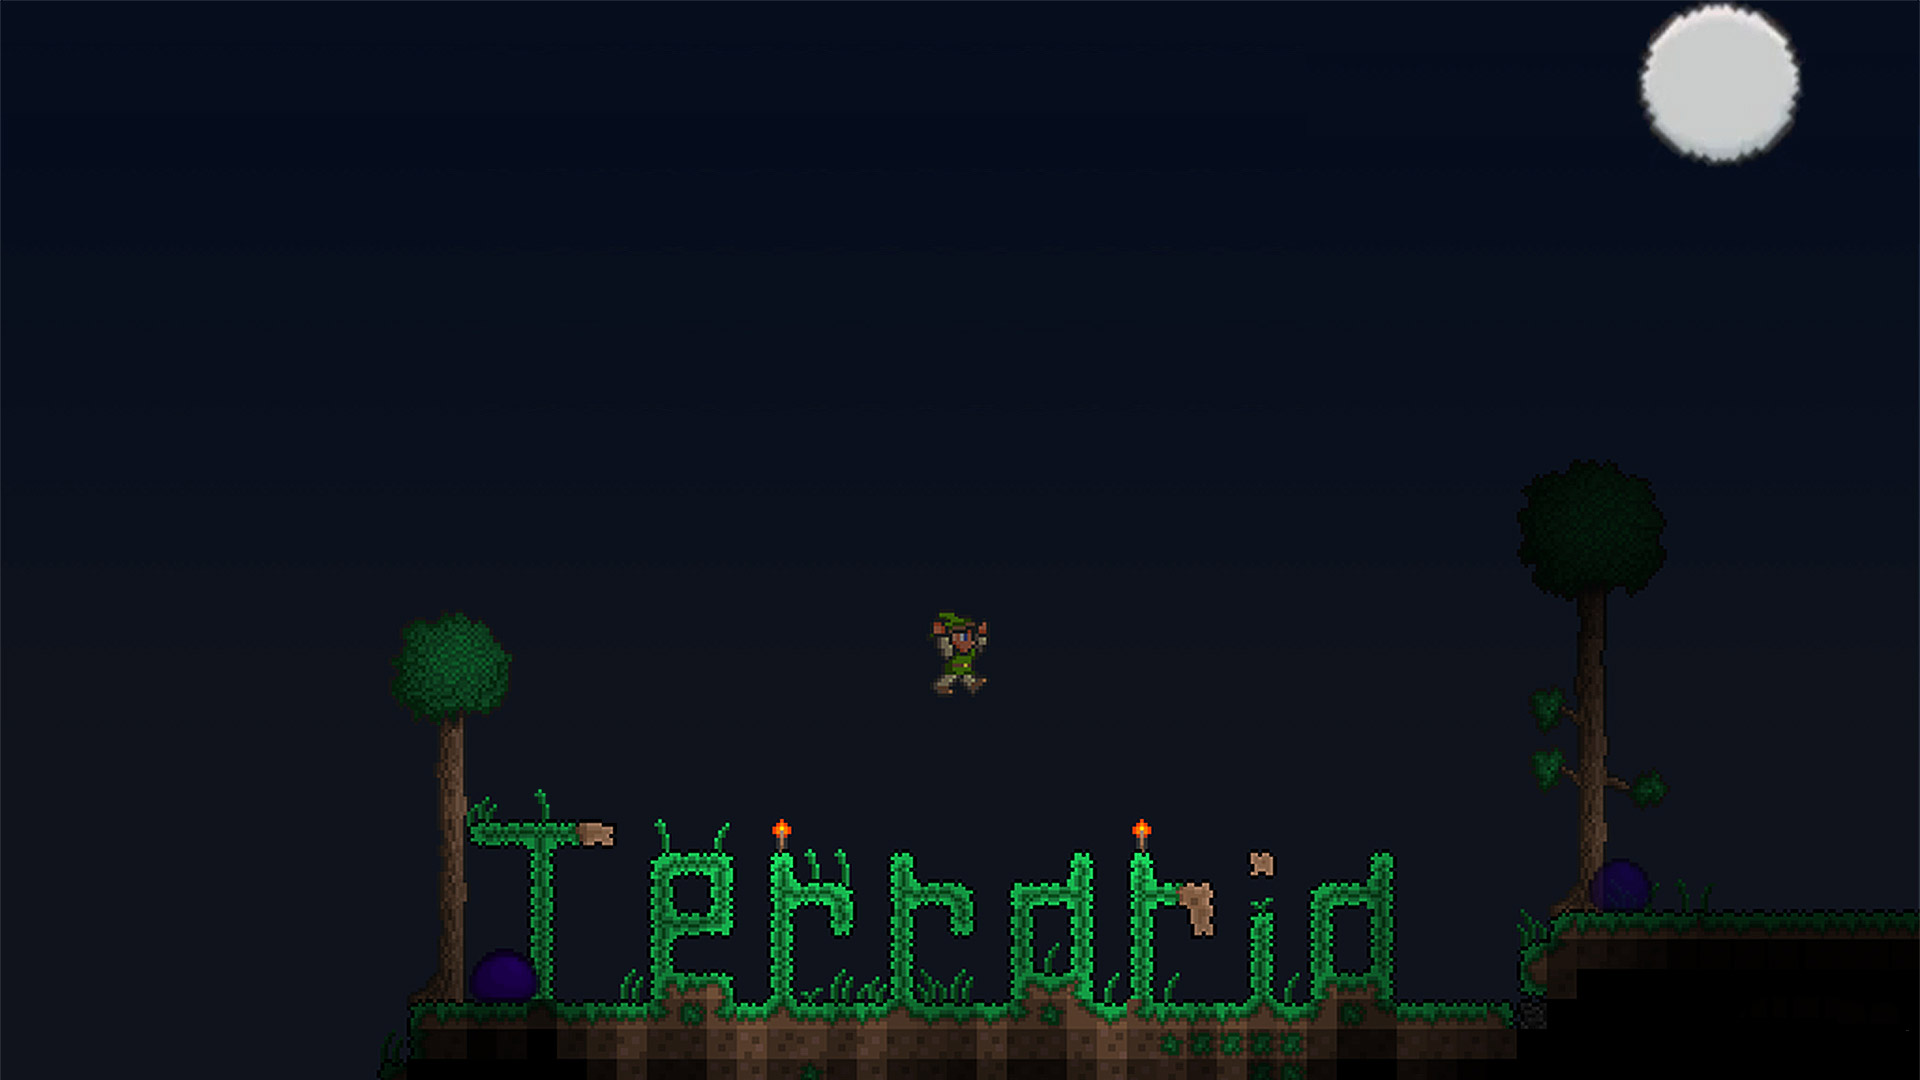 Terraria Wallpaper in 1920x1080